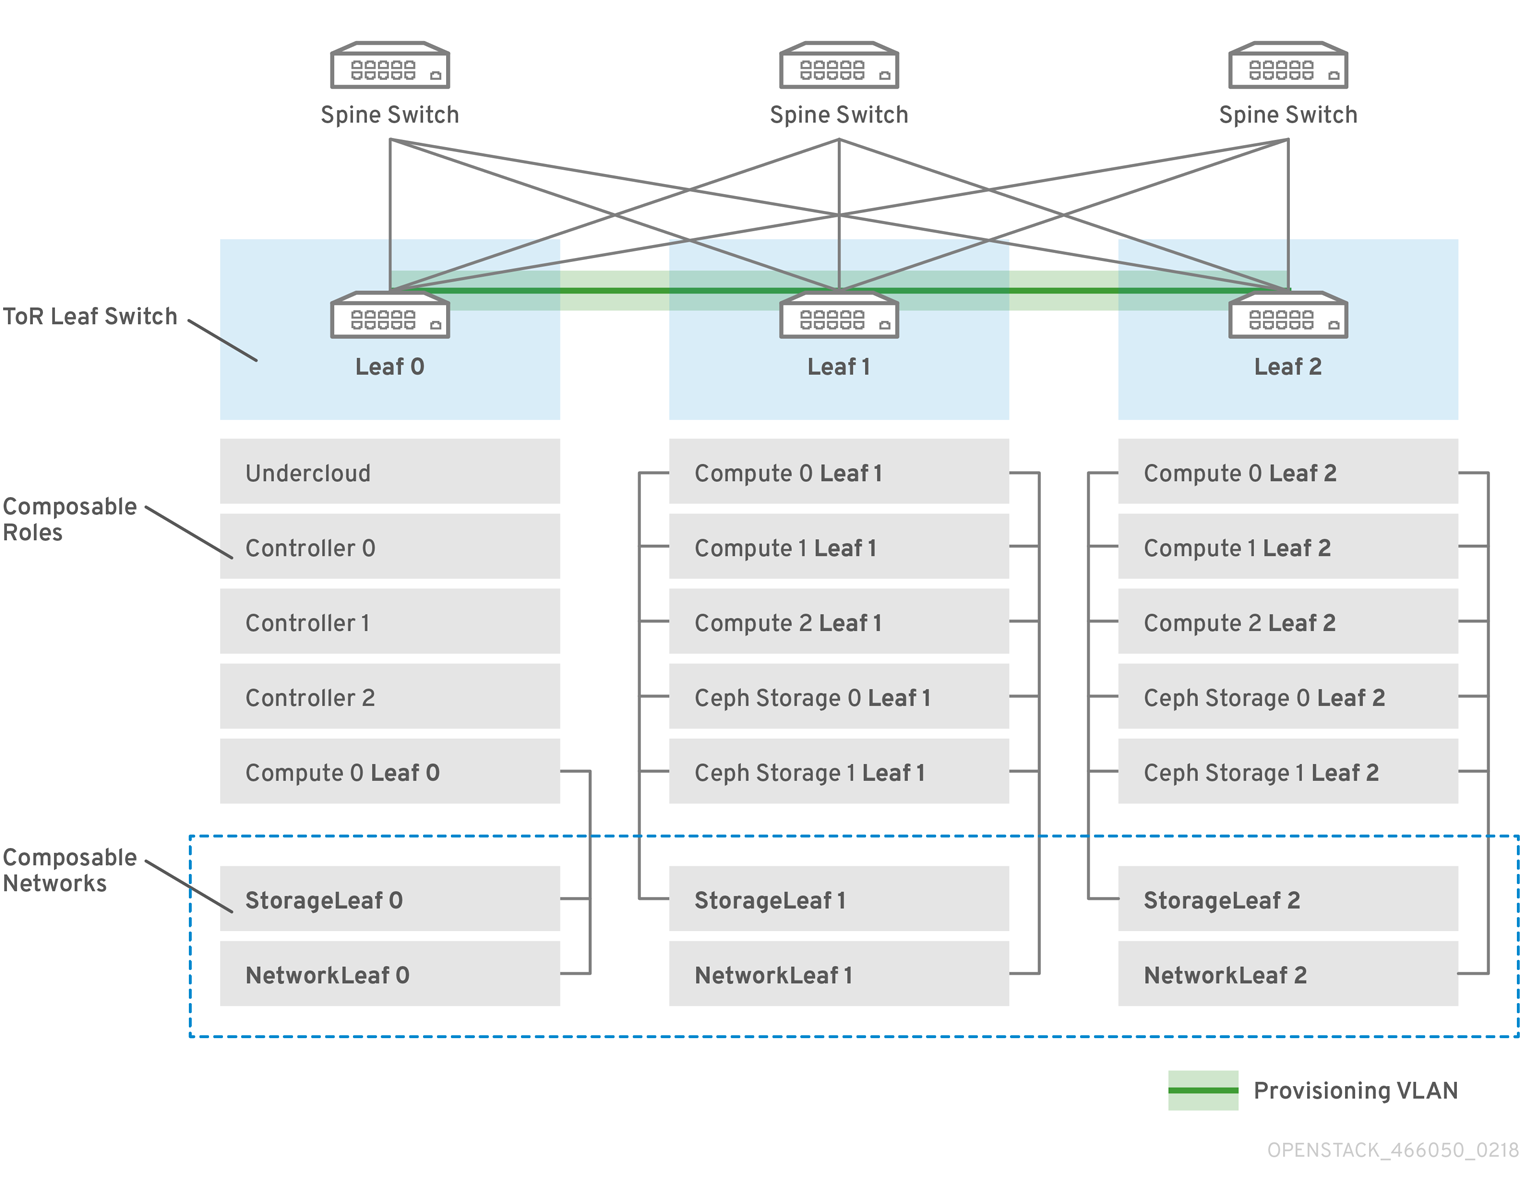 OpenStack Spine Leaf 466050 0218 VLAN